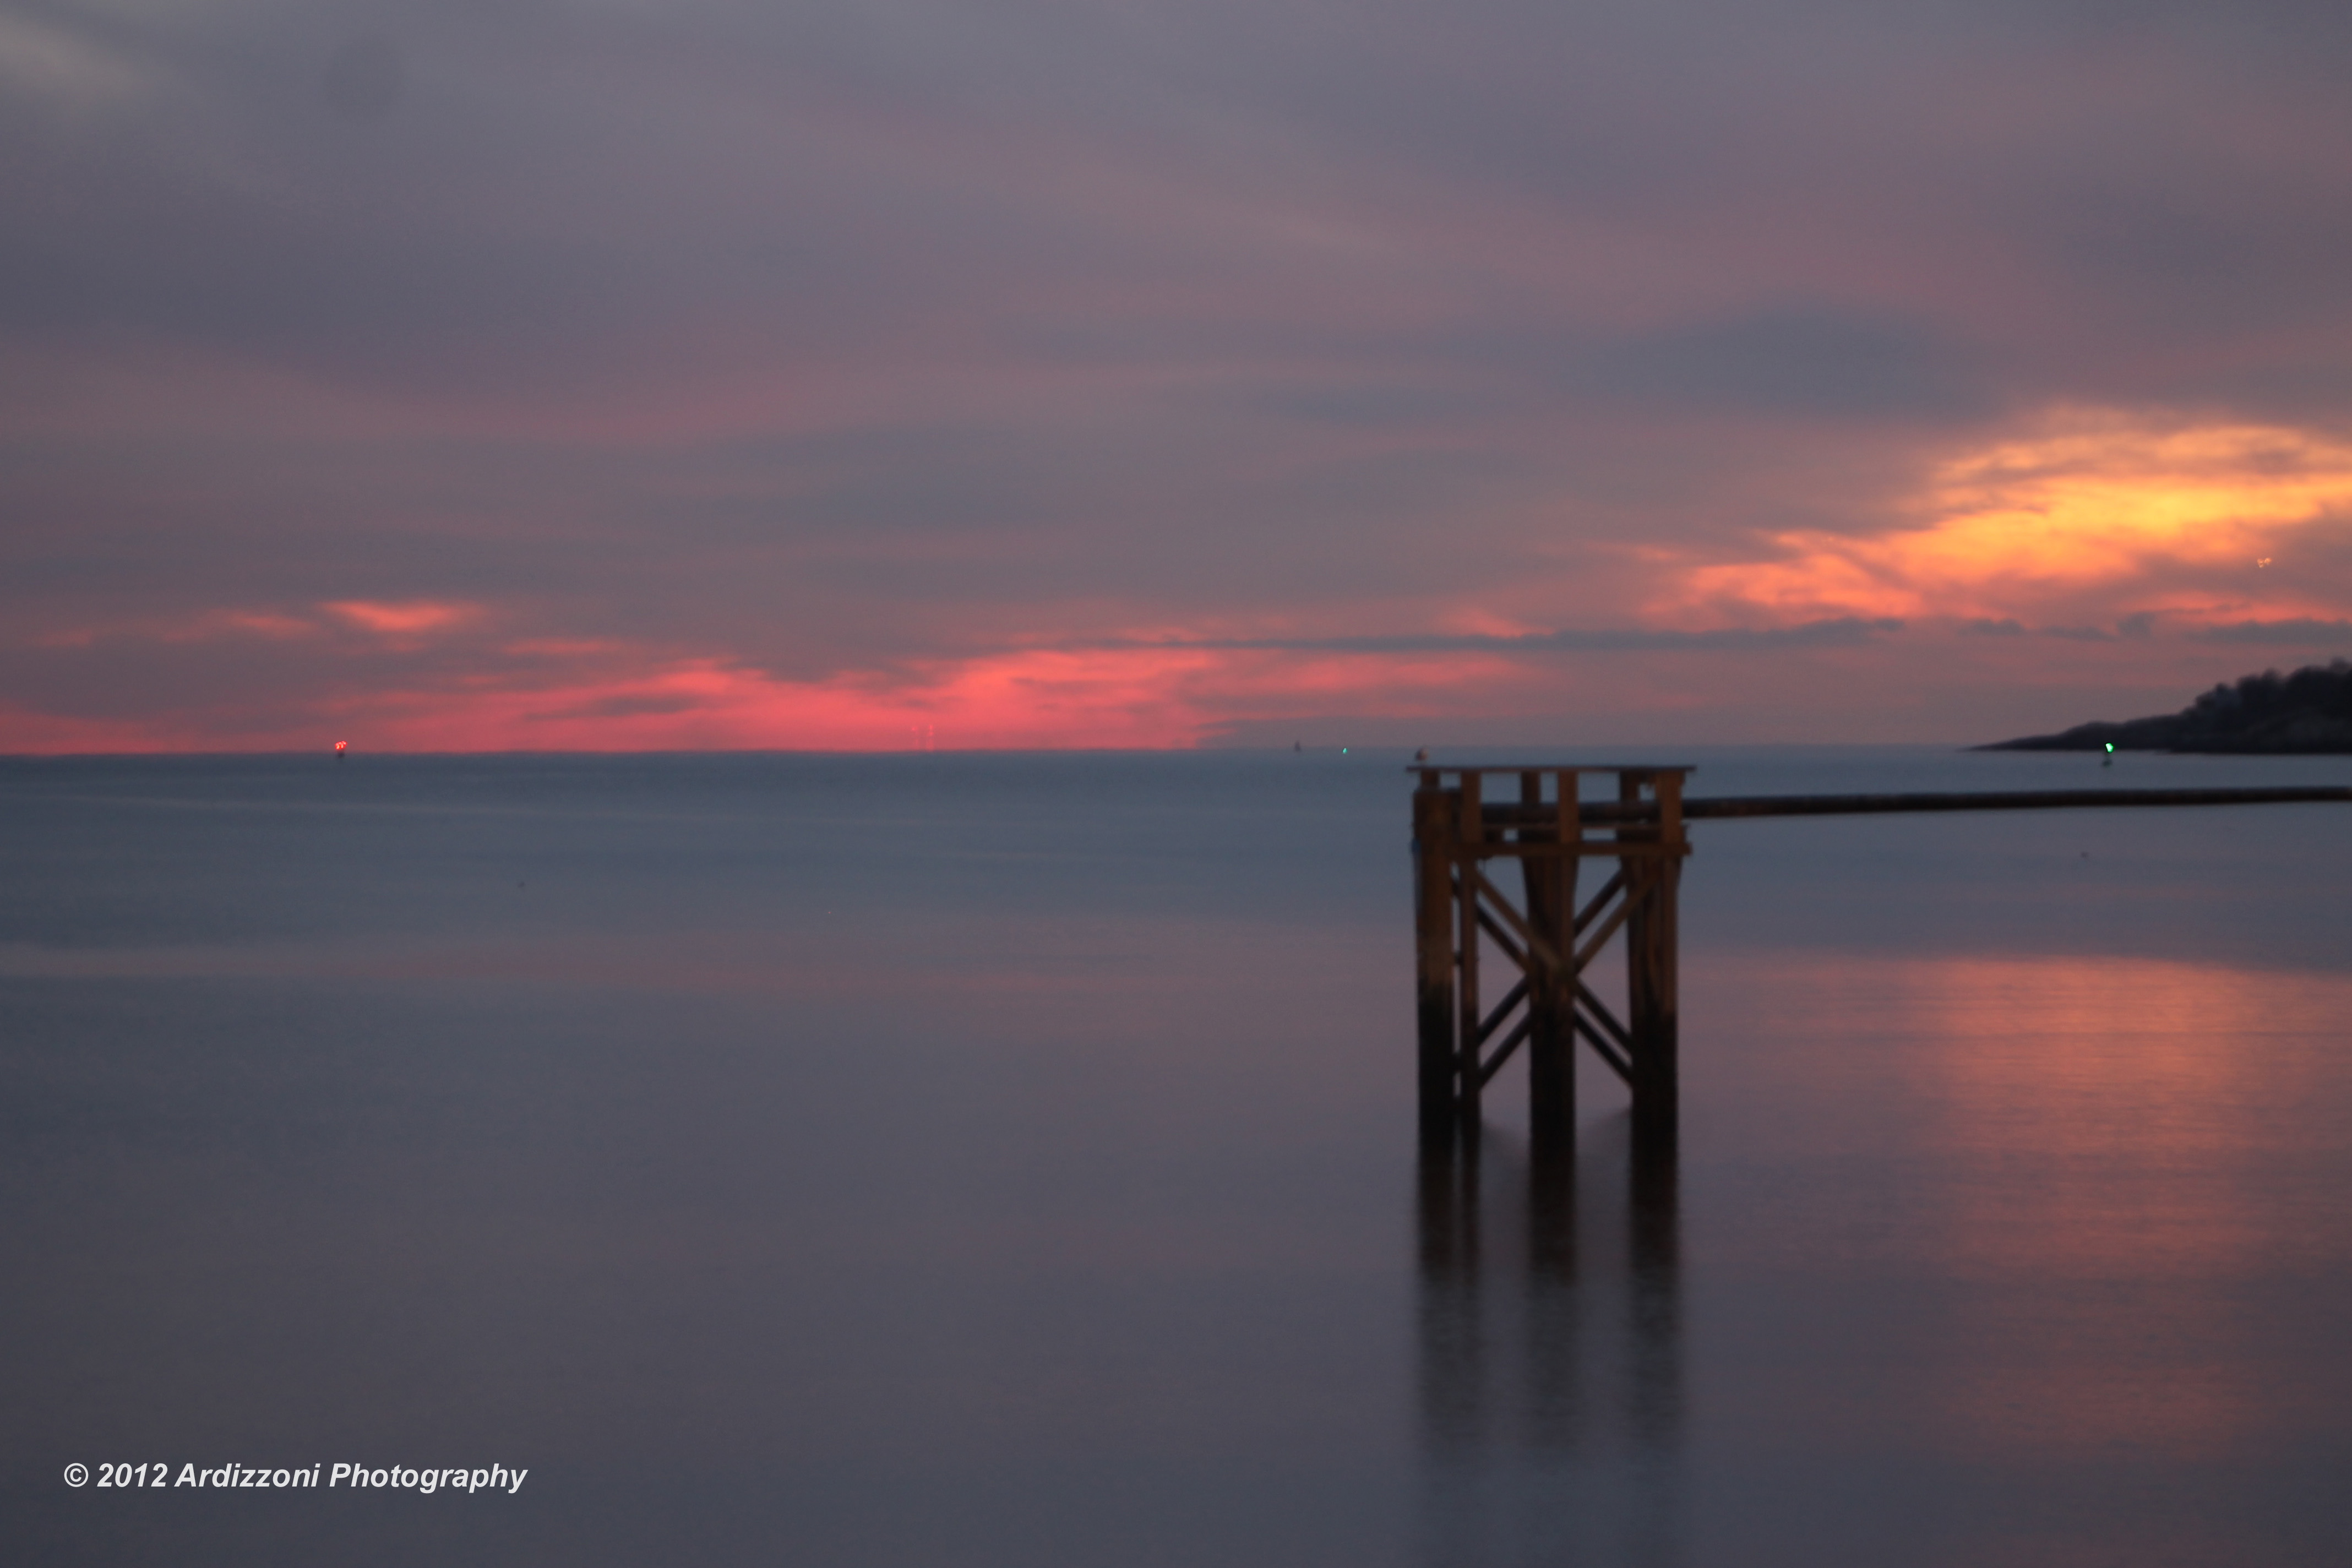 November 28, 2012 sunset over the greasy pole